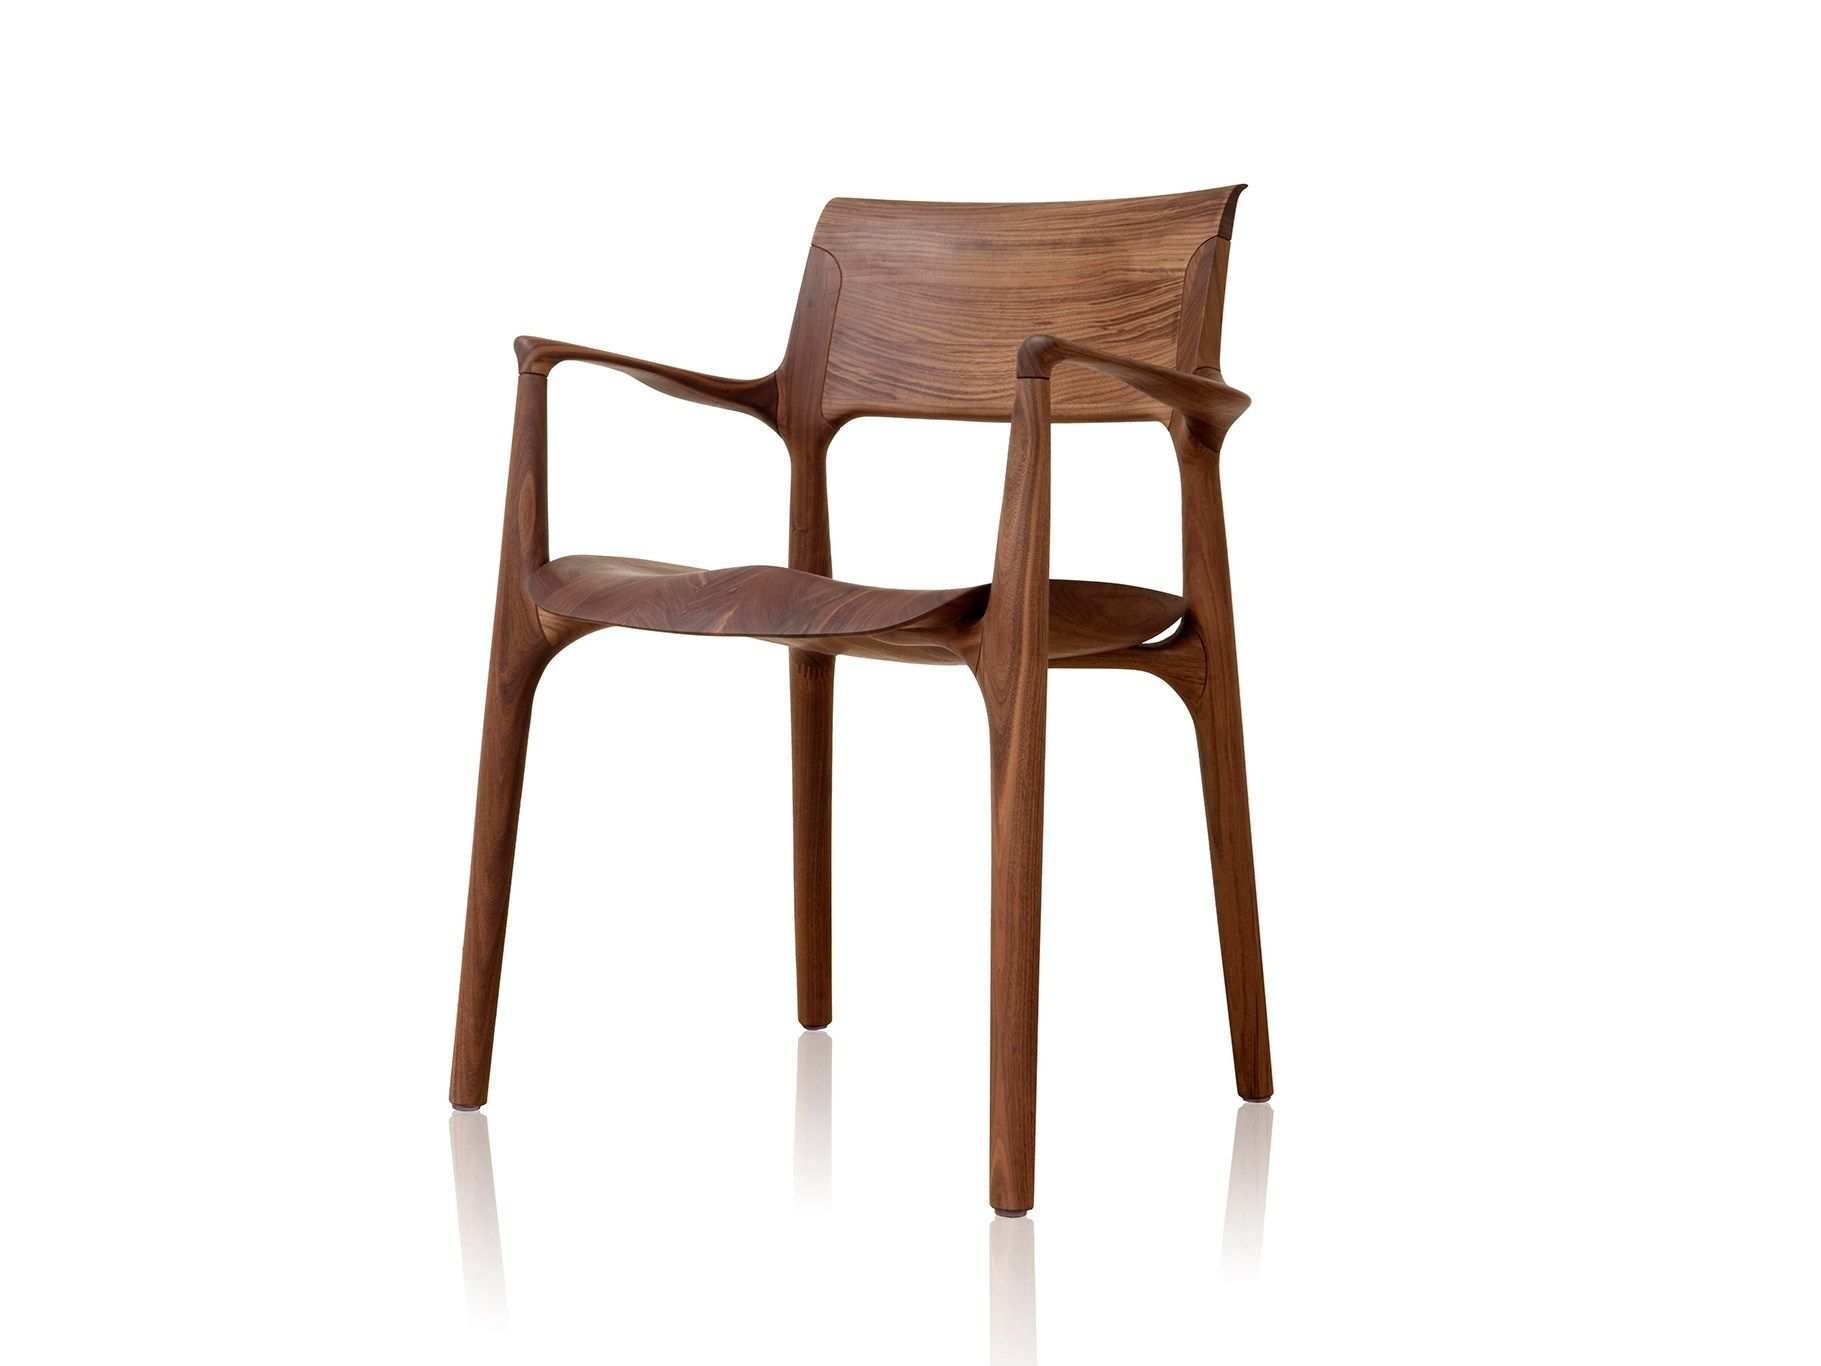 EASY Solid wood chair with armrests by Sollos design by Jader